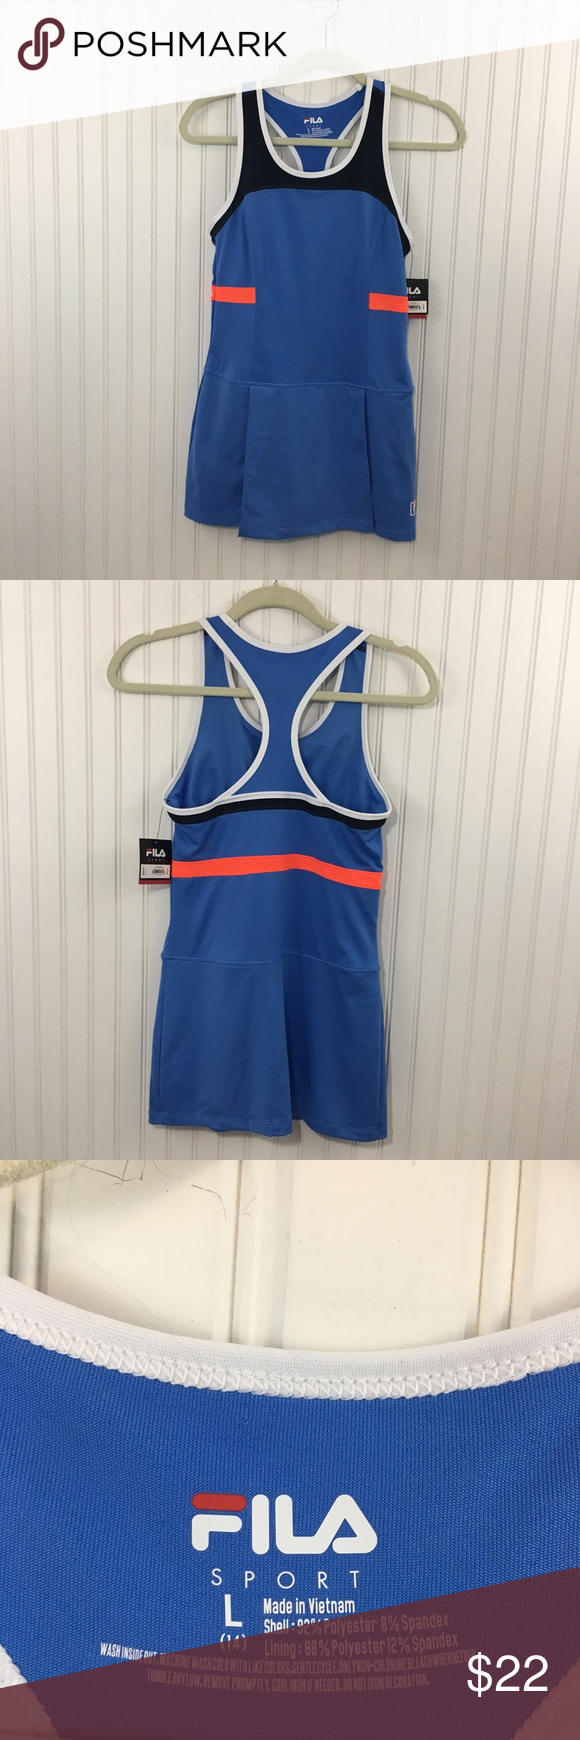 Fila sport athletic tennis dress girls trudry nwt tennis dress